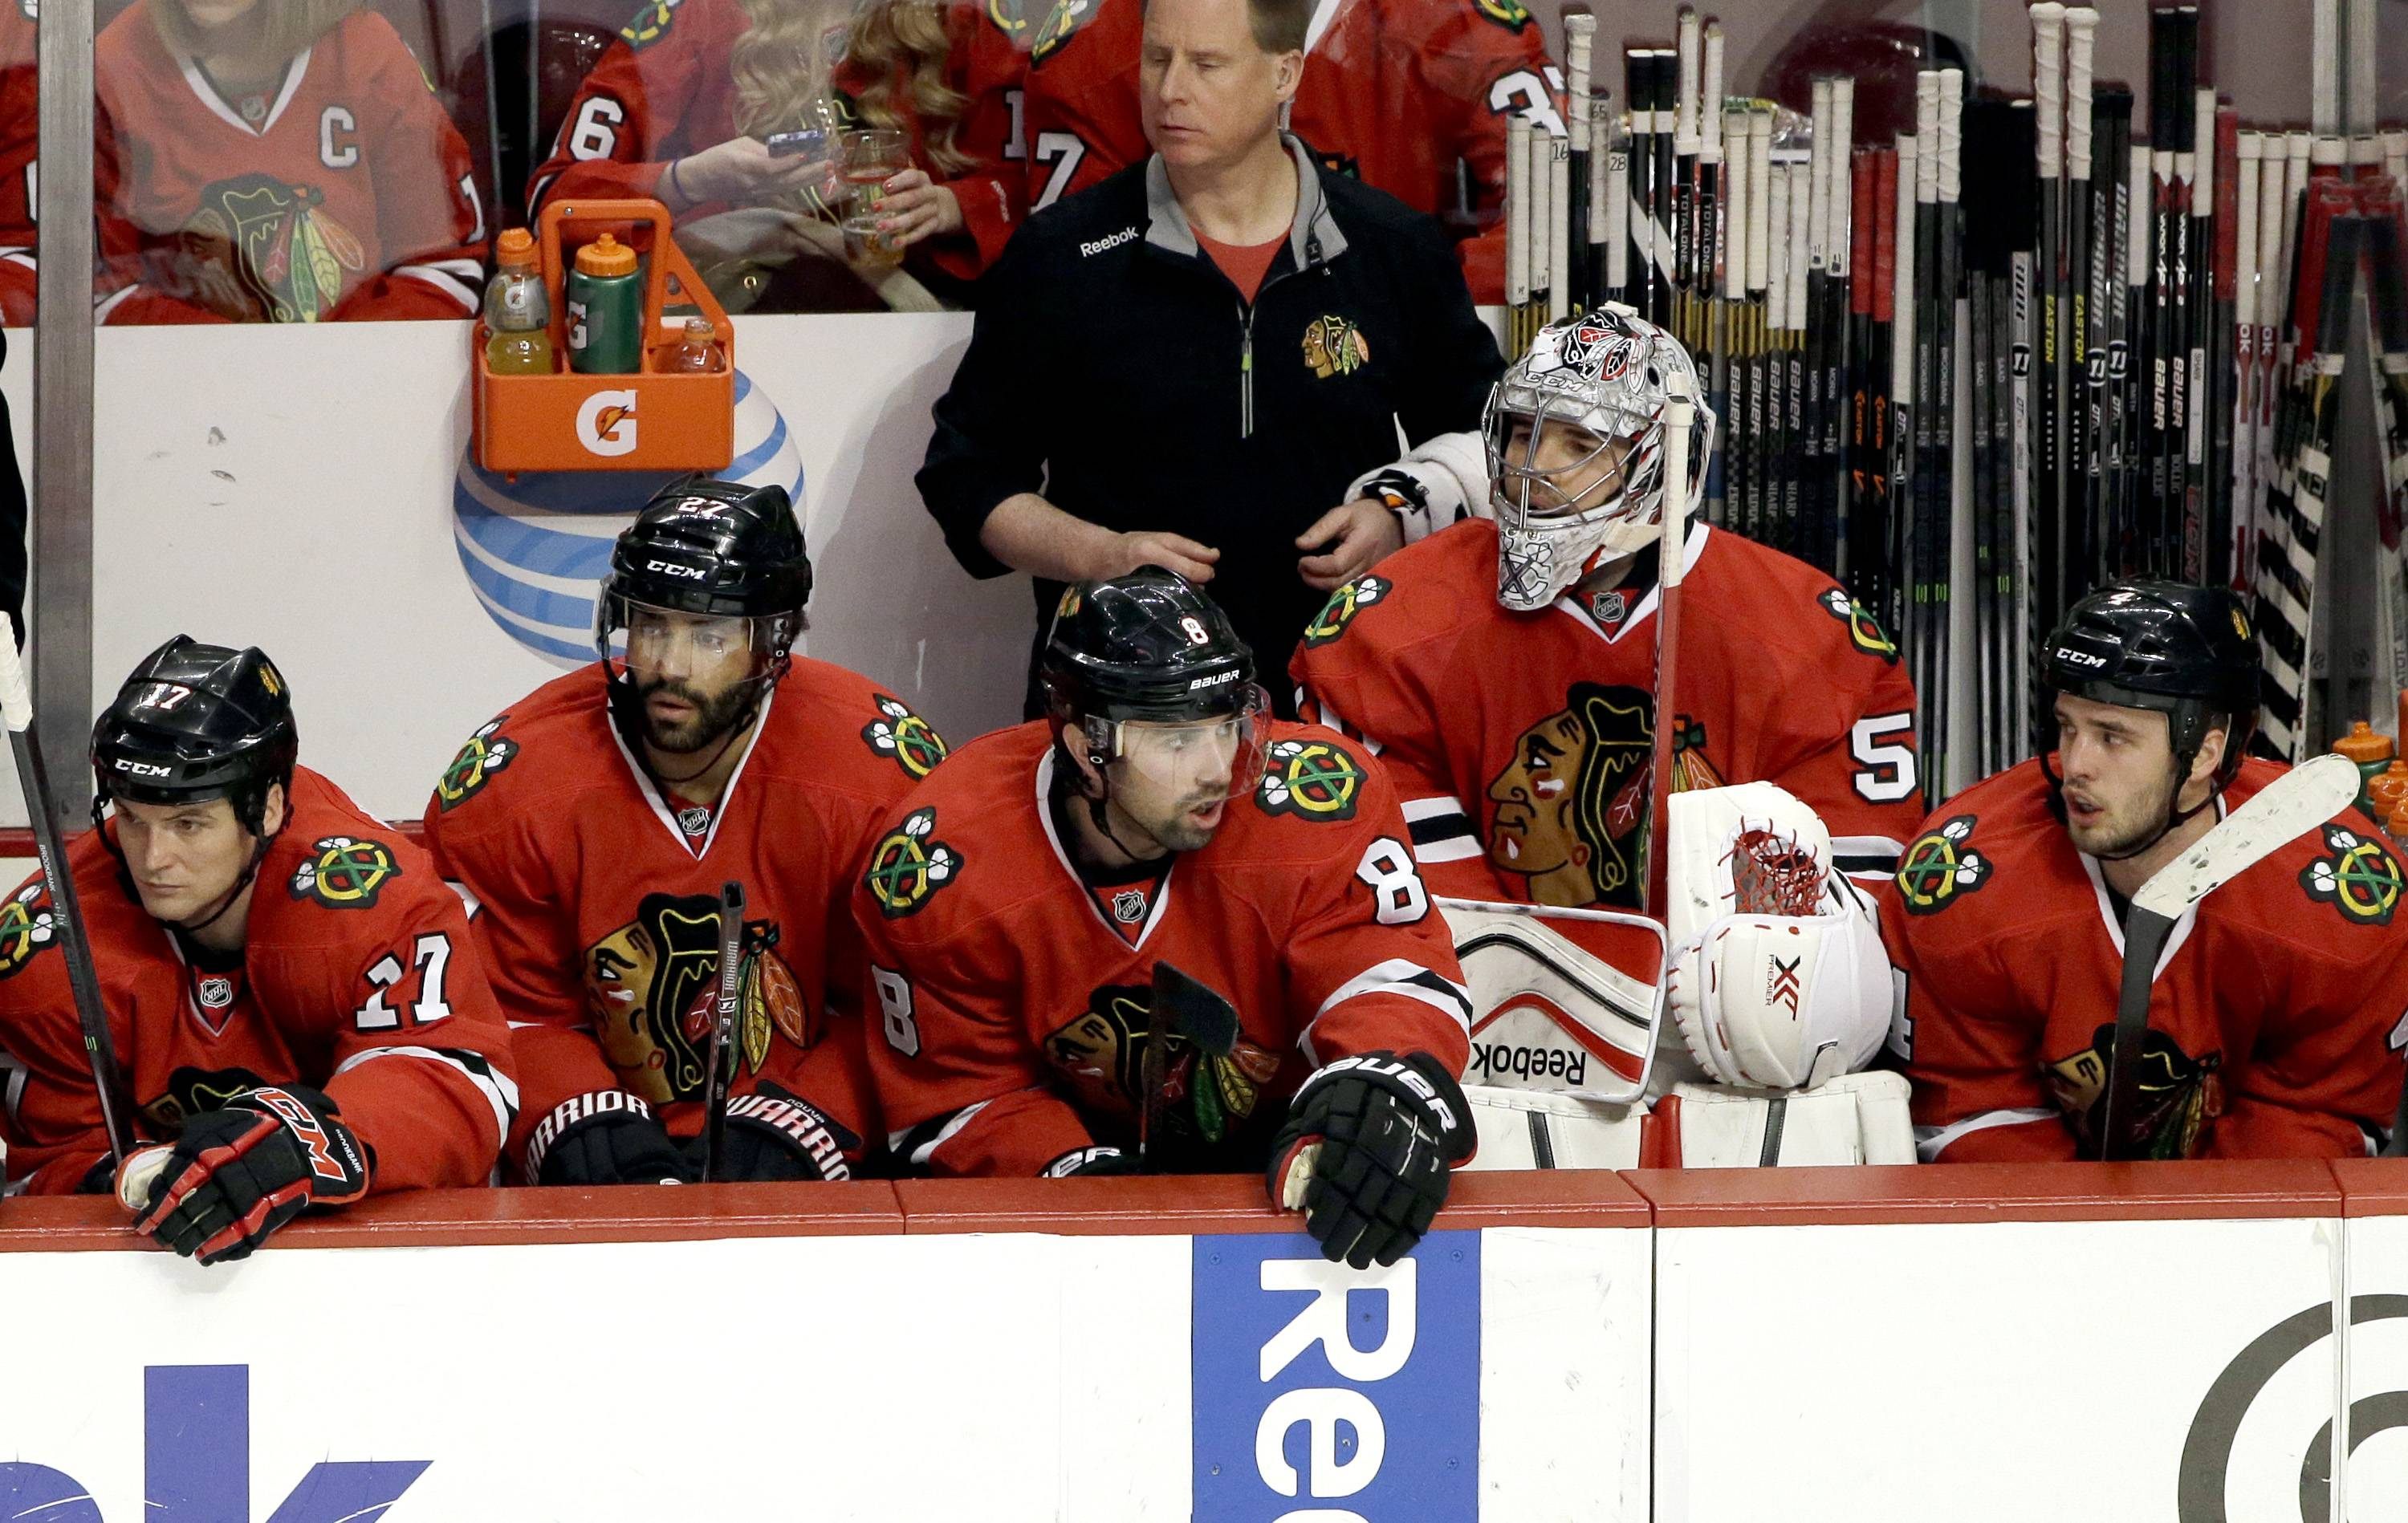 Chicago Blackhawks' Sheldon Brookbank (17), Johnny Oduya (27), Nick Leddy (8), goalie Corey Crawford (50), and Niklas Hjalmarsson (4) react as they watch teammates during the third period of an NHL hockey game against the Nashville Predators in Chicago, Sunday, March 23, 2014. The Predators won 2-0.